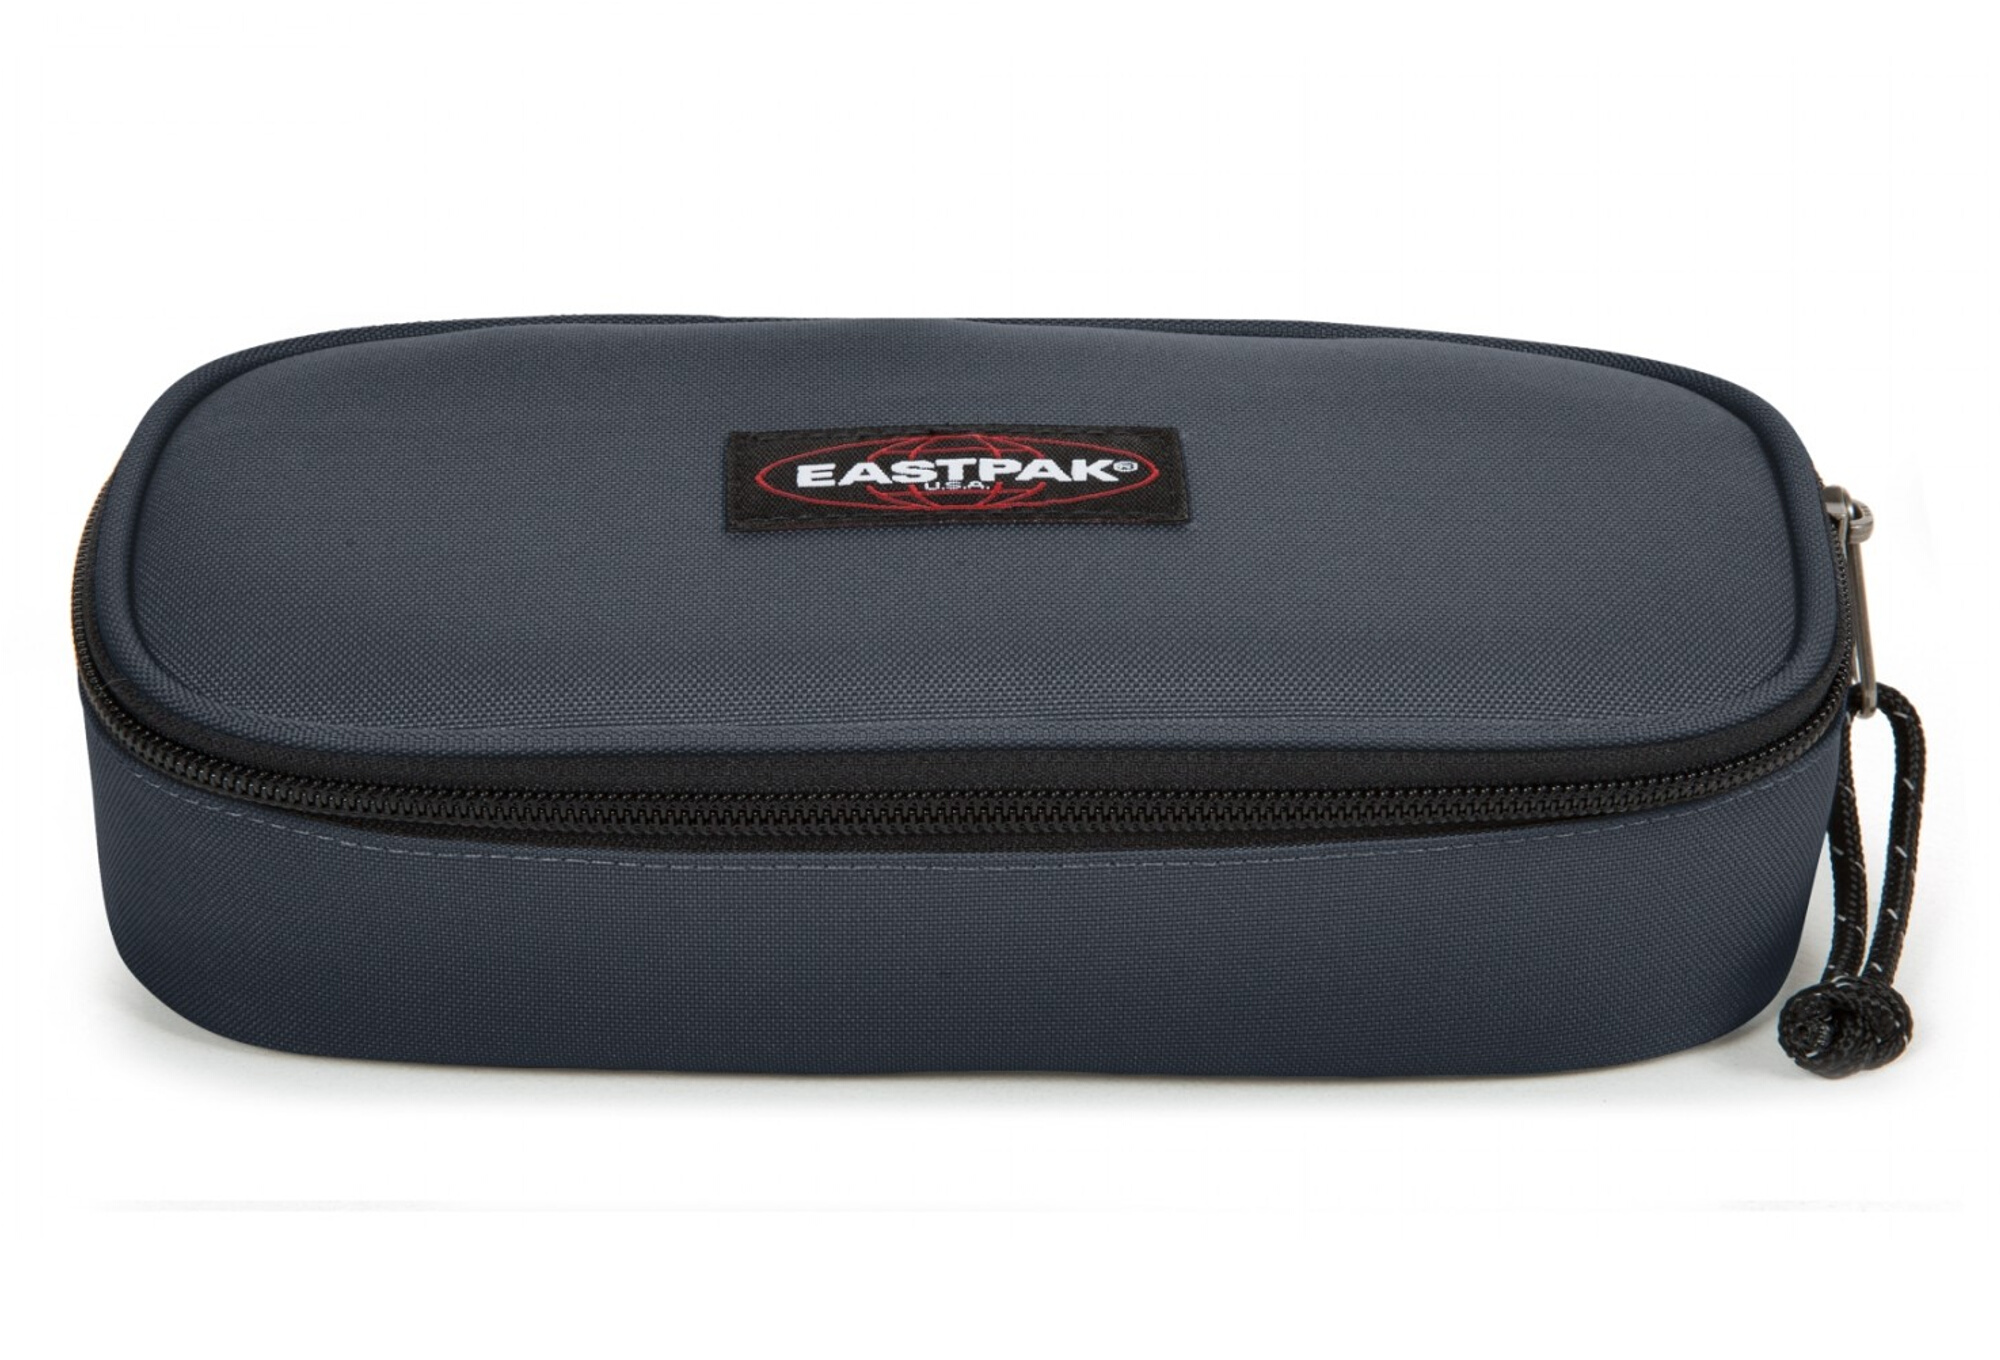 Trousse Eastpak Oval Midnight bleu uAW3t